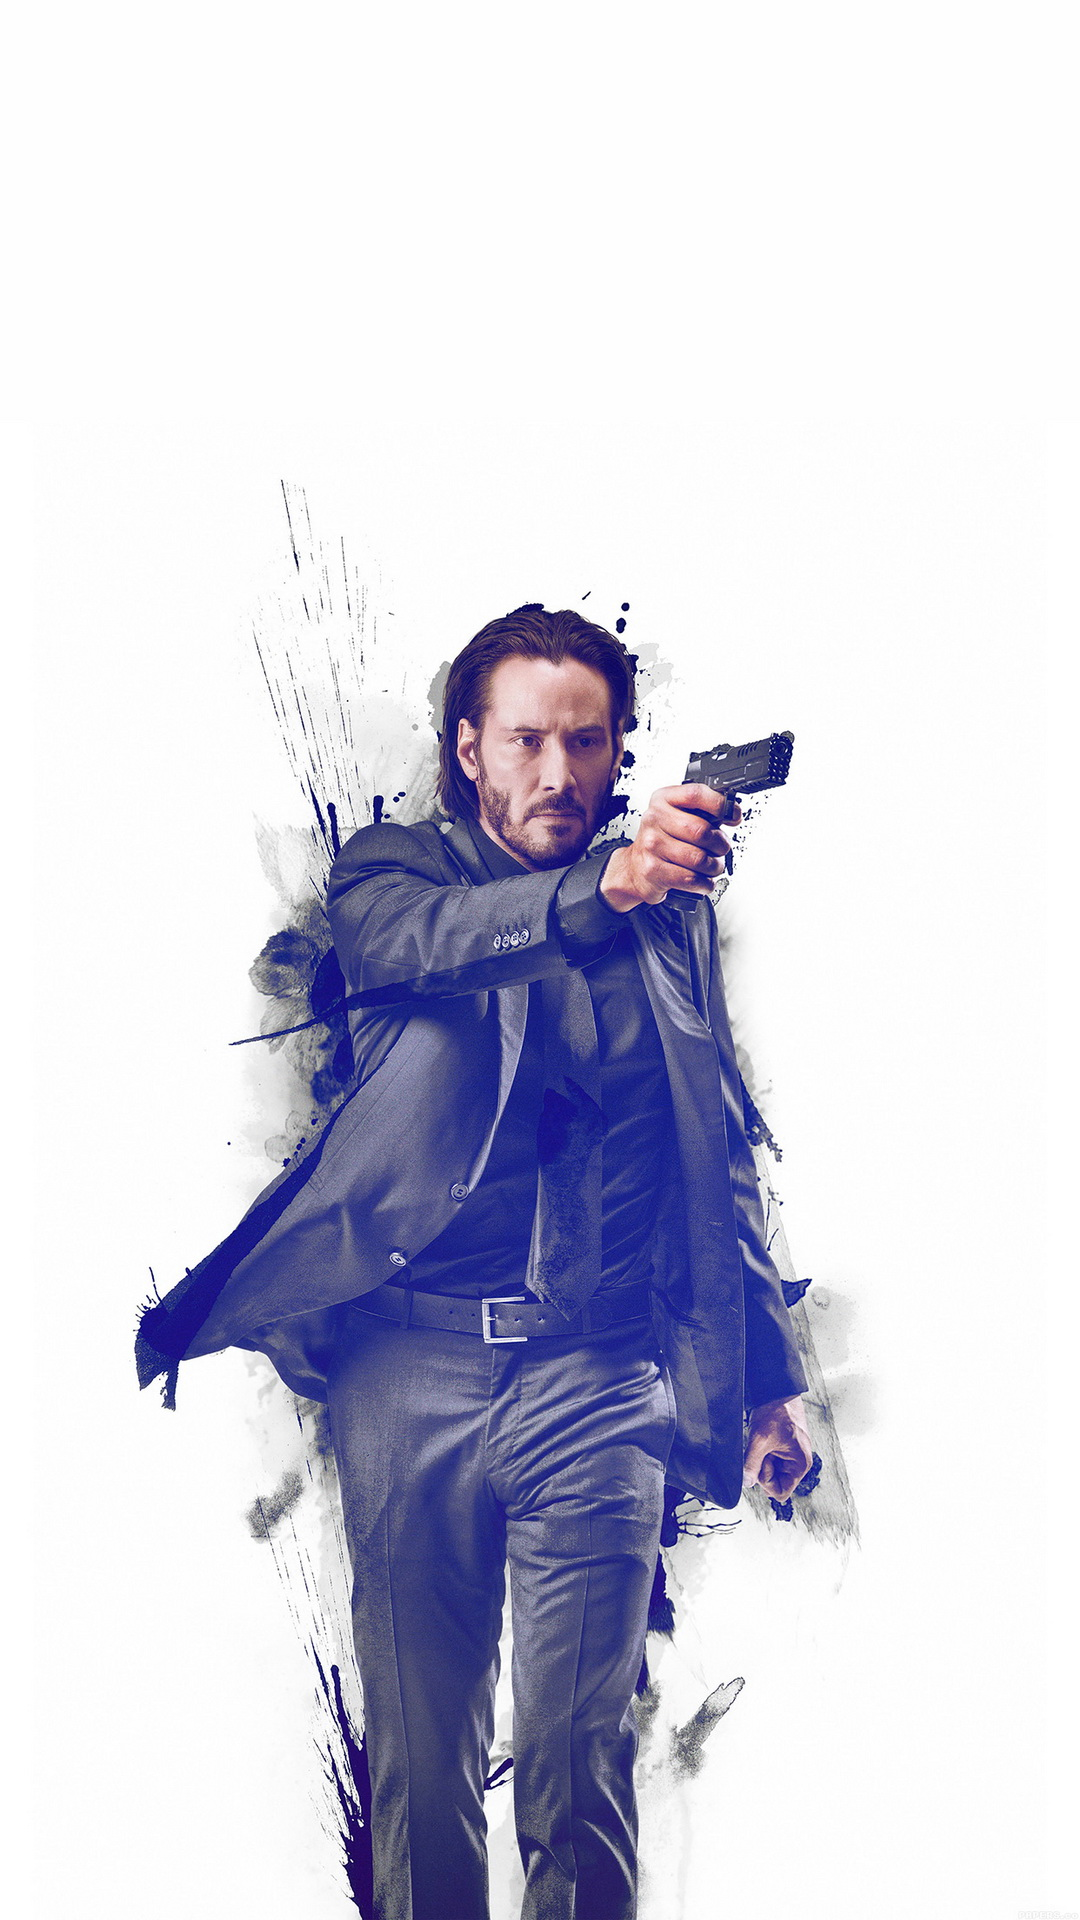 Htc One M8 Wallpaper Hd John Wick Best Htc One Wallpapers Free And Easy To Download